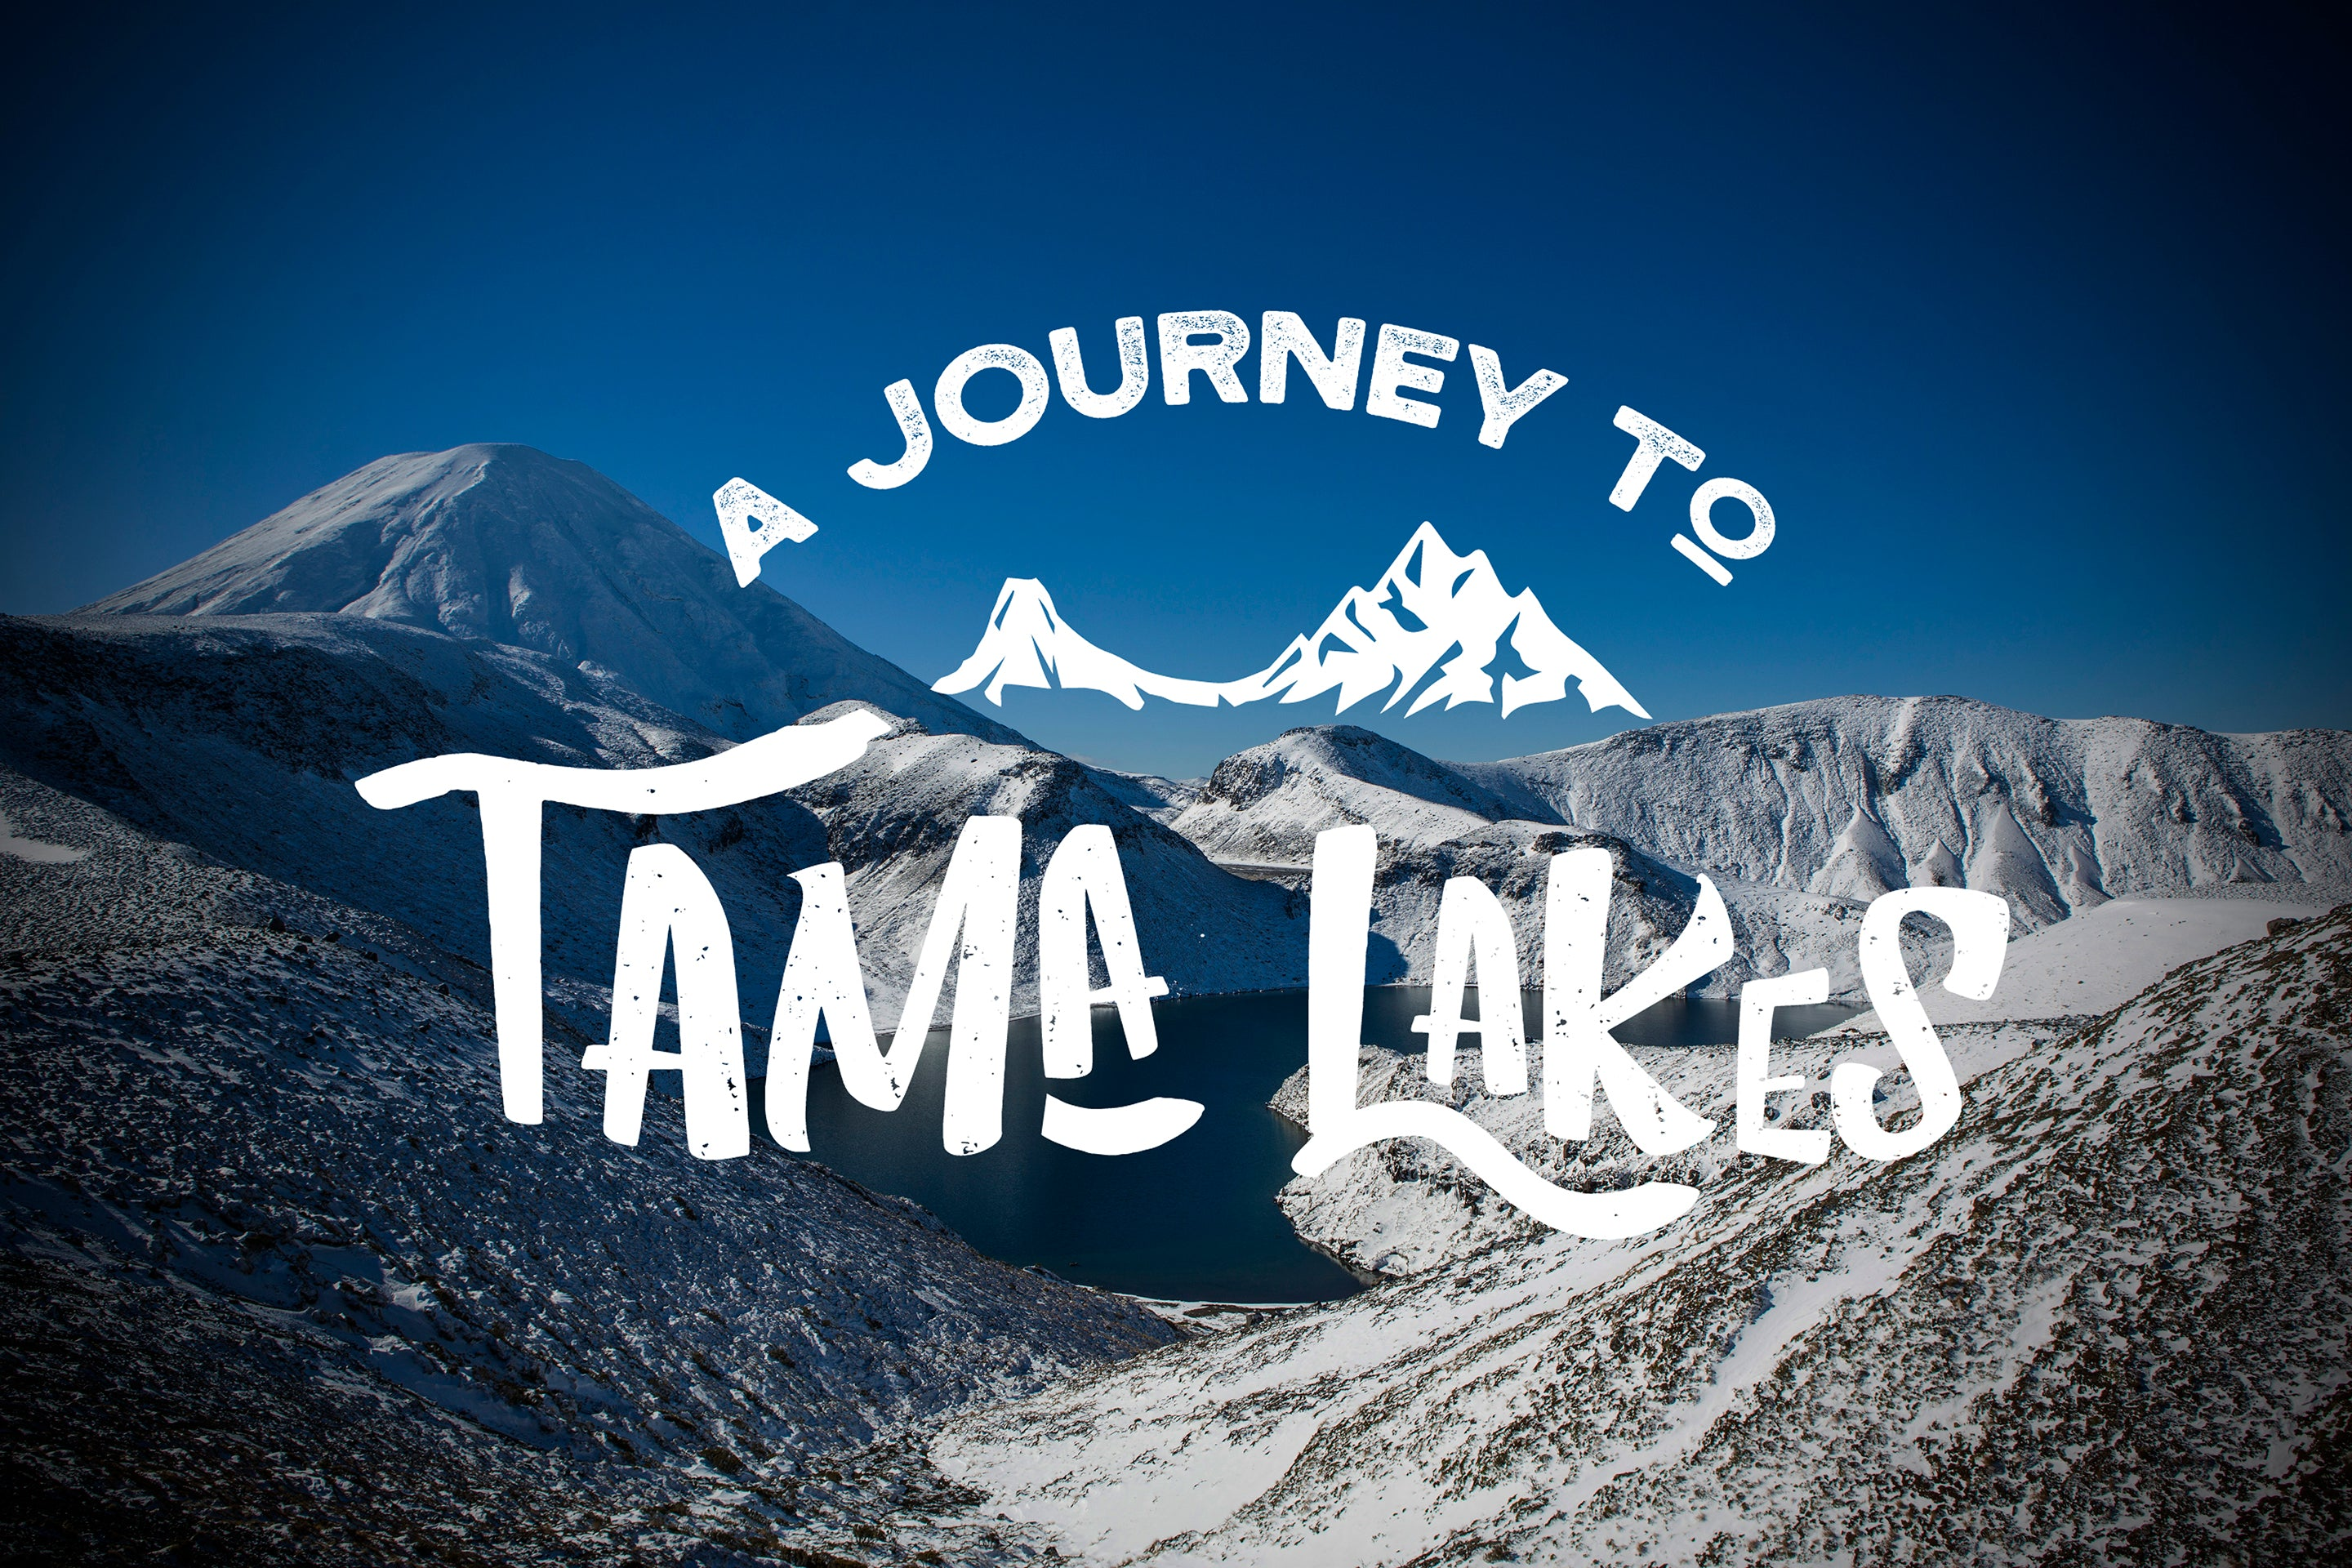 A Journey to Tama Lakes • Sanborn Scout Field Log